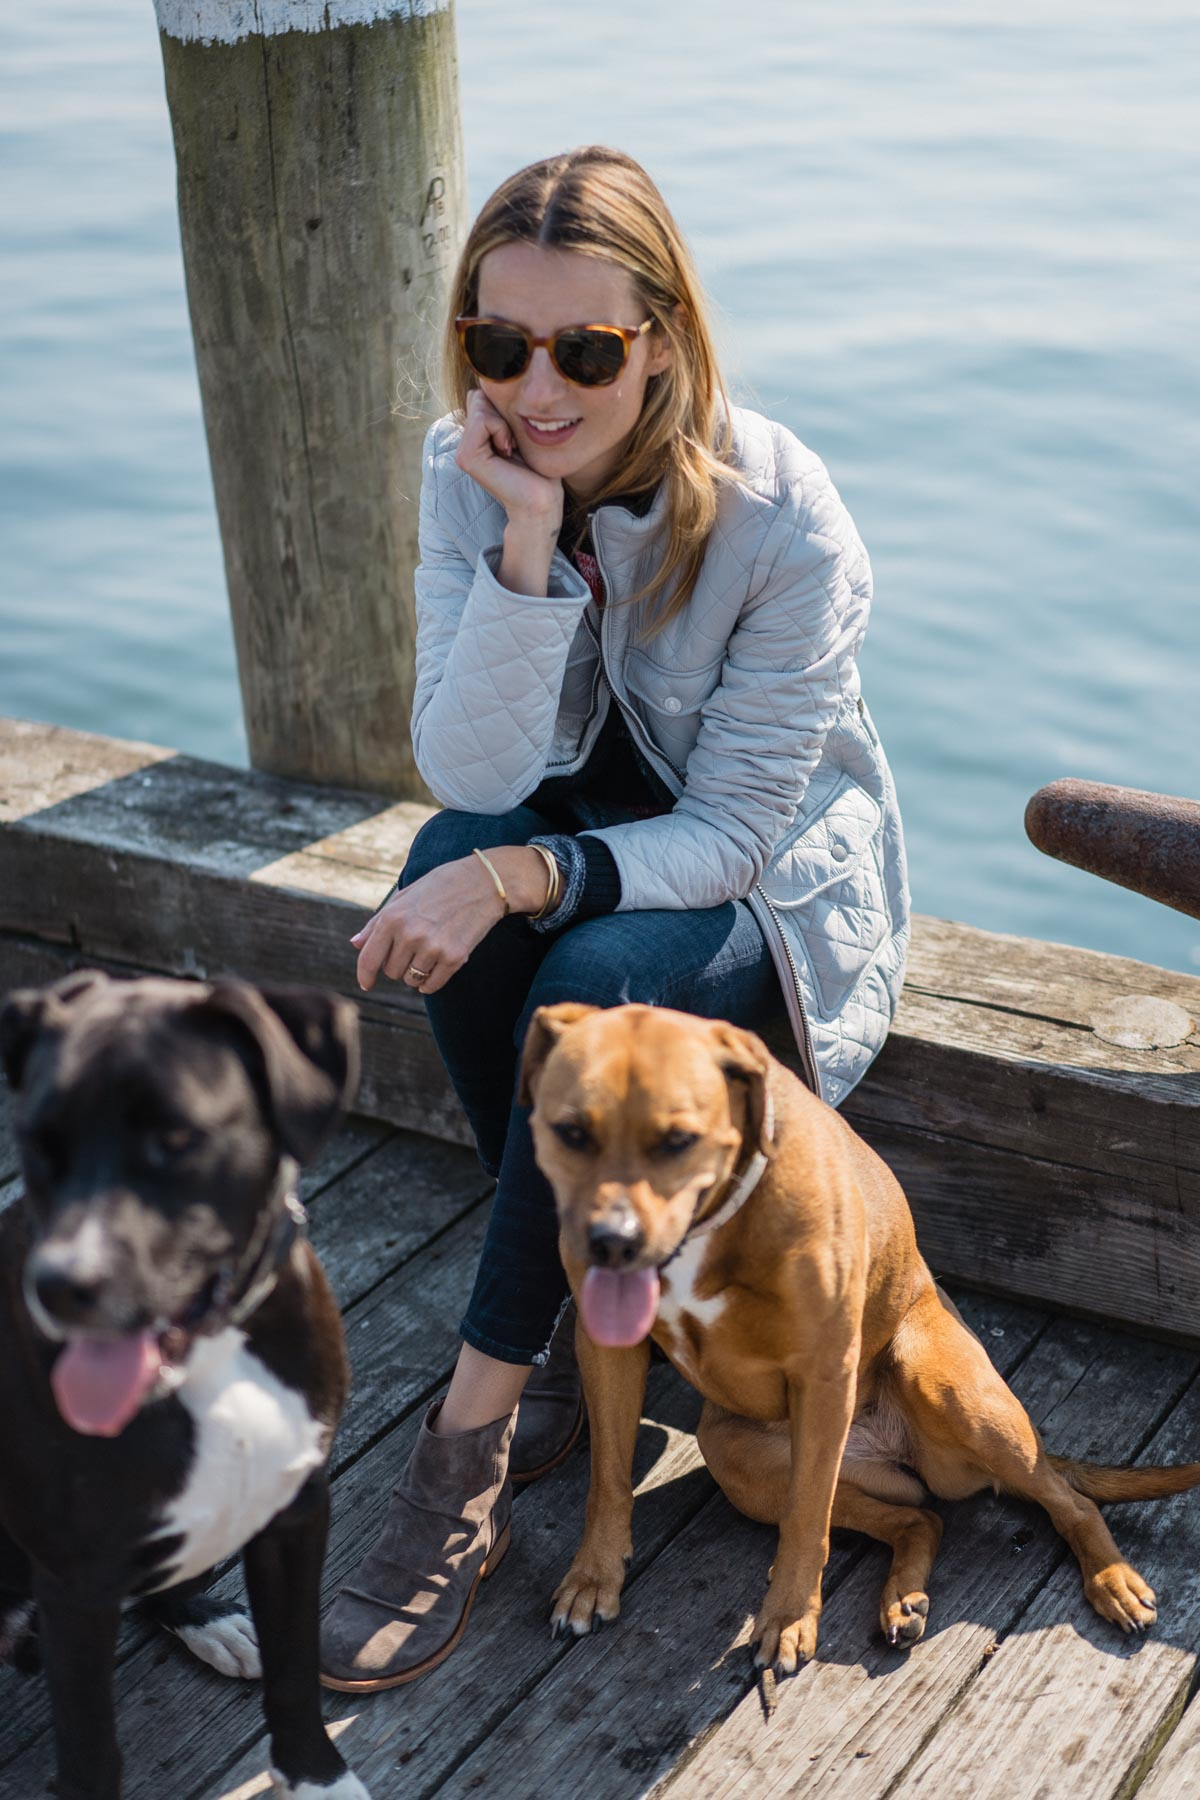 Jess Ann Kirby takes her puppies on a day trip to Newport, RI in the Barbour Coastal Collection